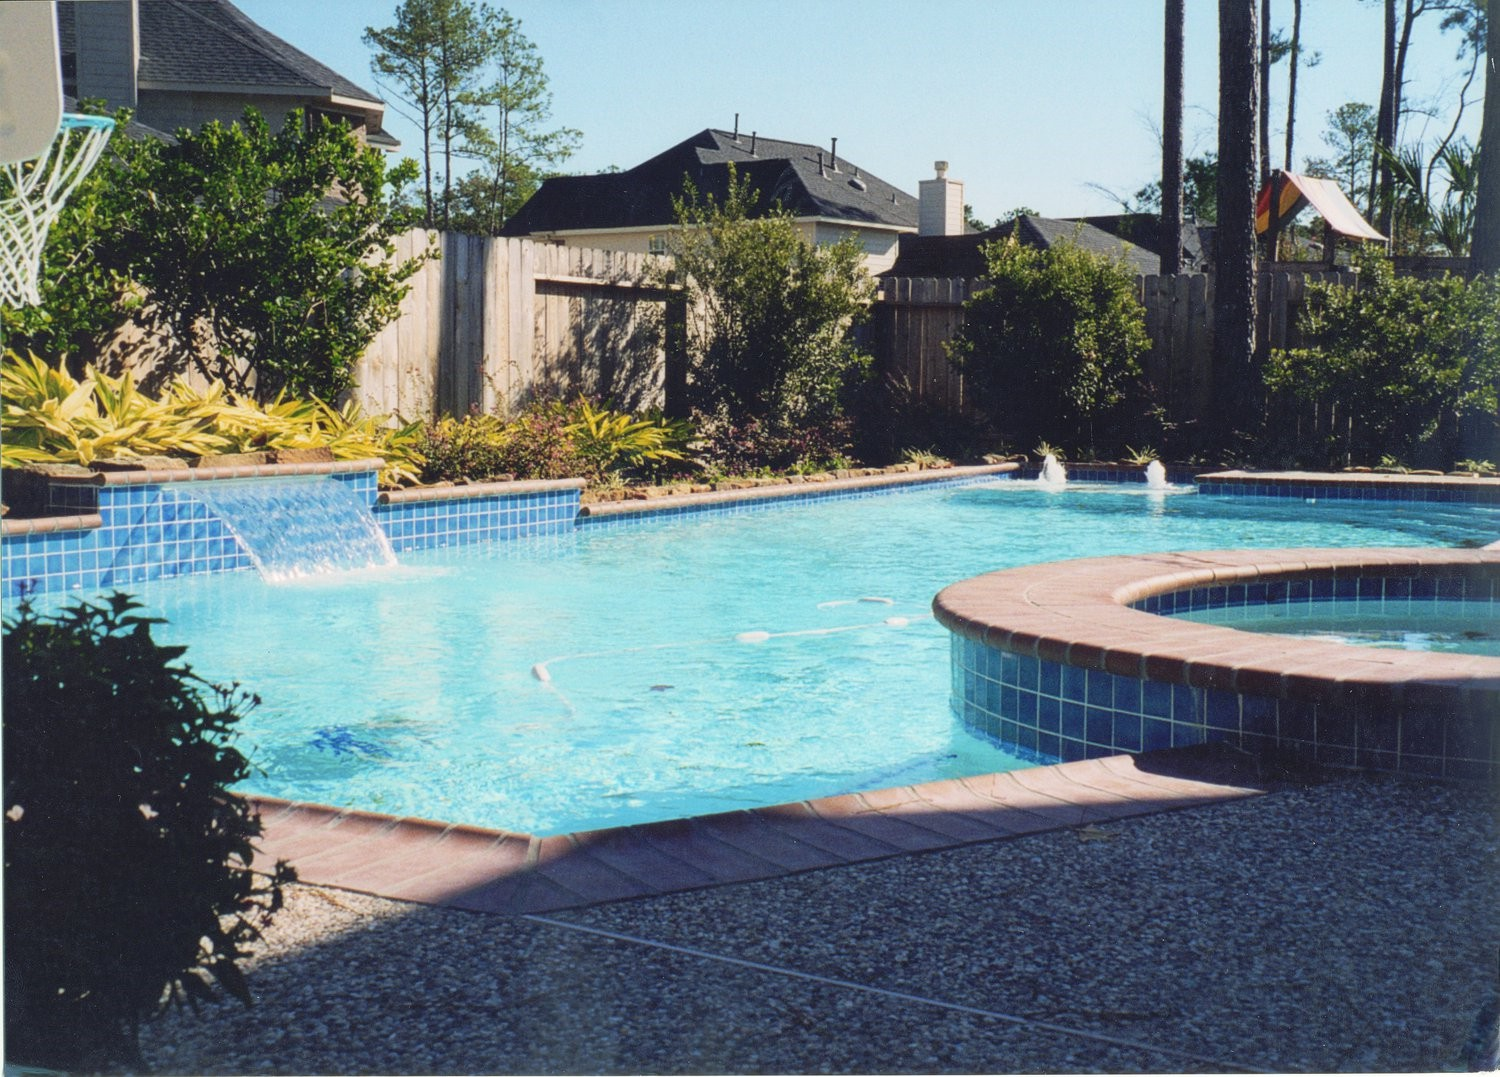 Pool designs katy houston cypress spring tomball for Pool design katy tx